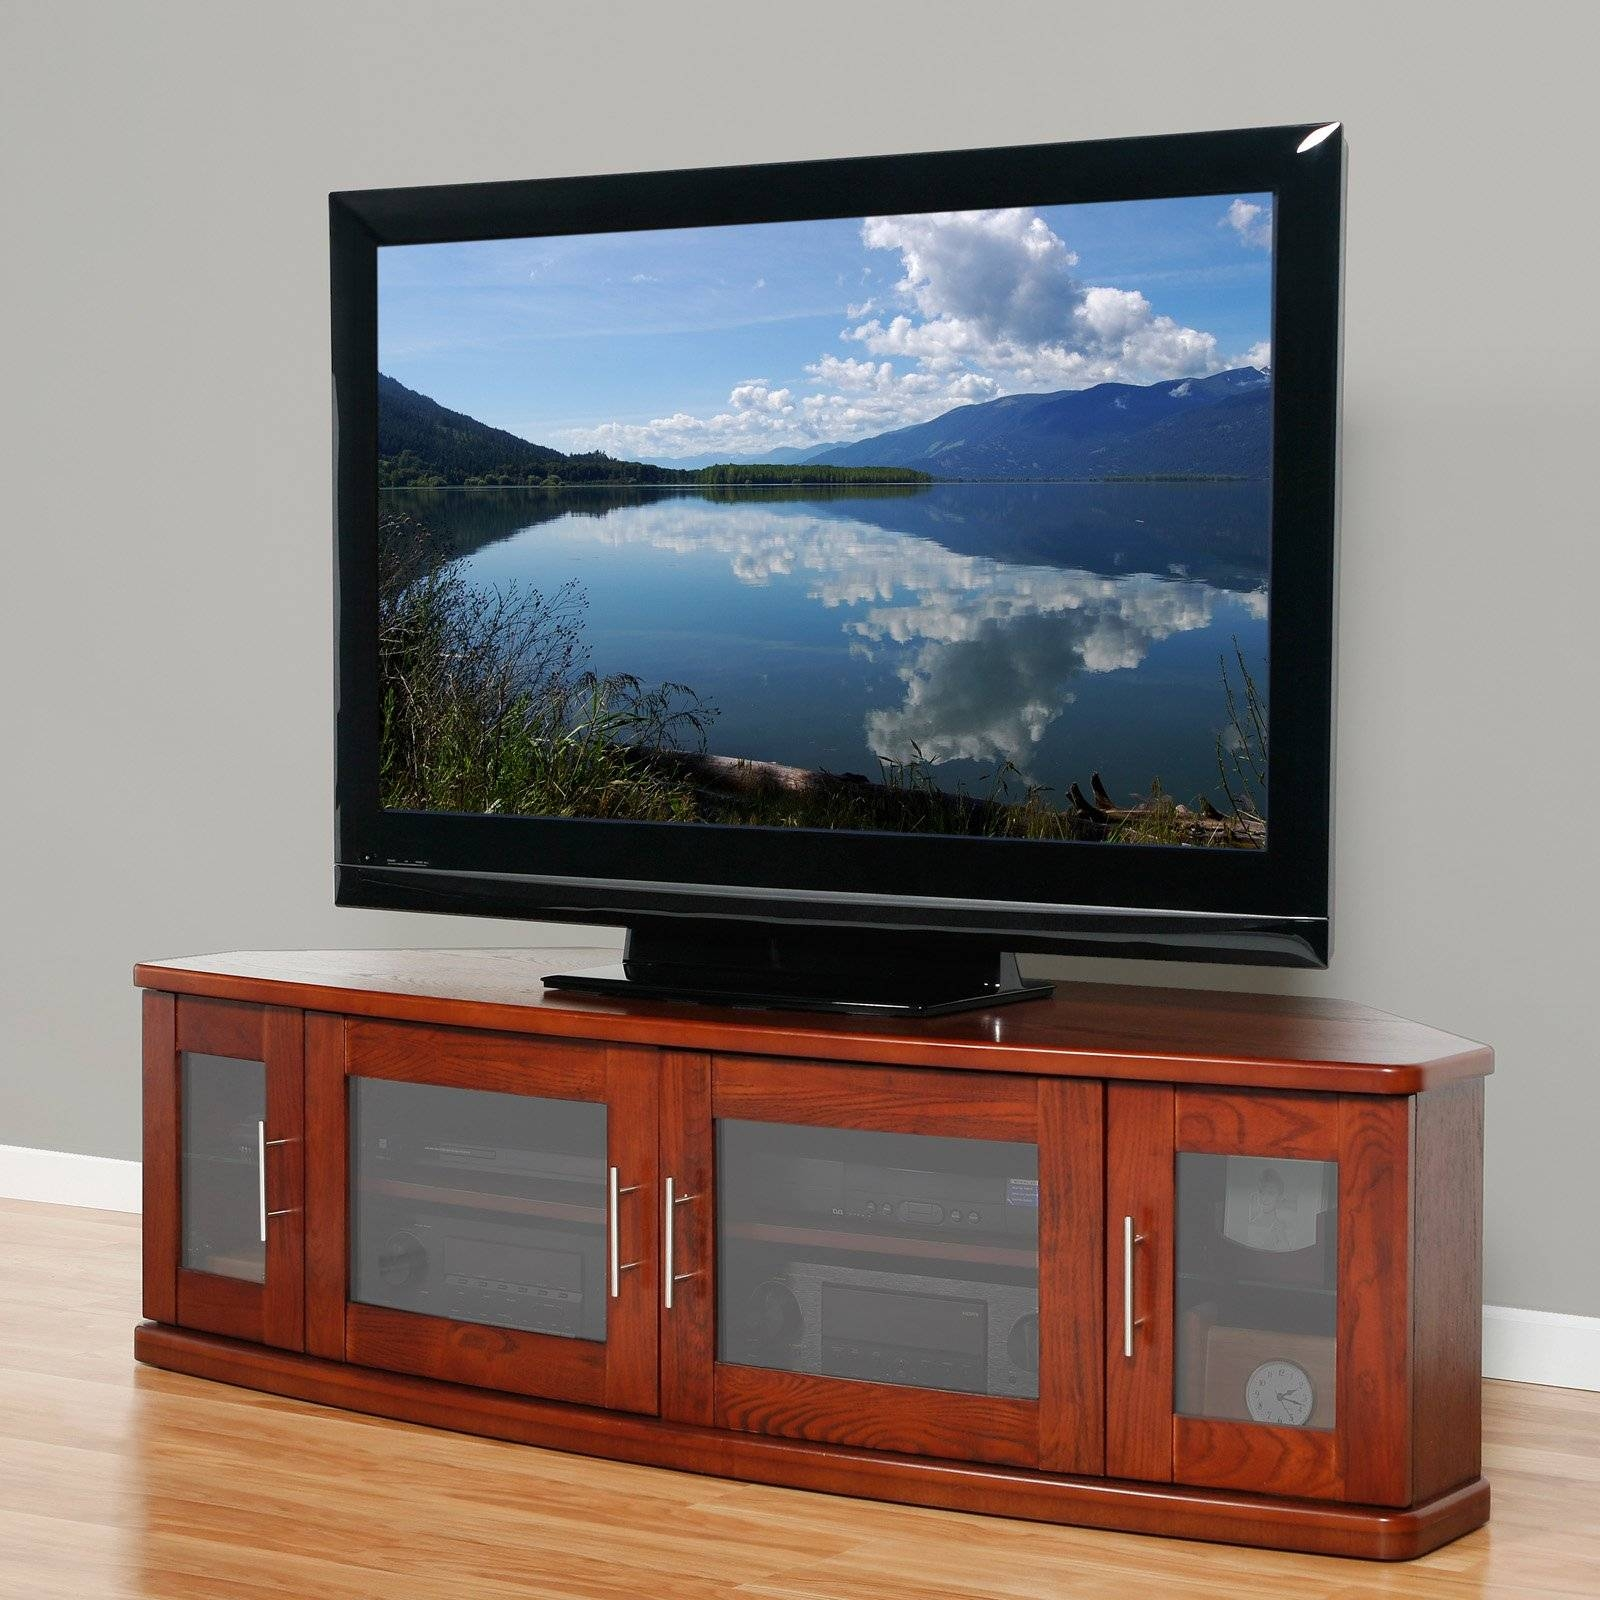 Brown Wooden Tv Cabinet With Glass Frosted Doors On The Floor inside Wooden Tv Cabinets With Glass Doors (Image 3 of 15)